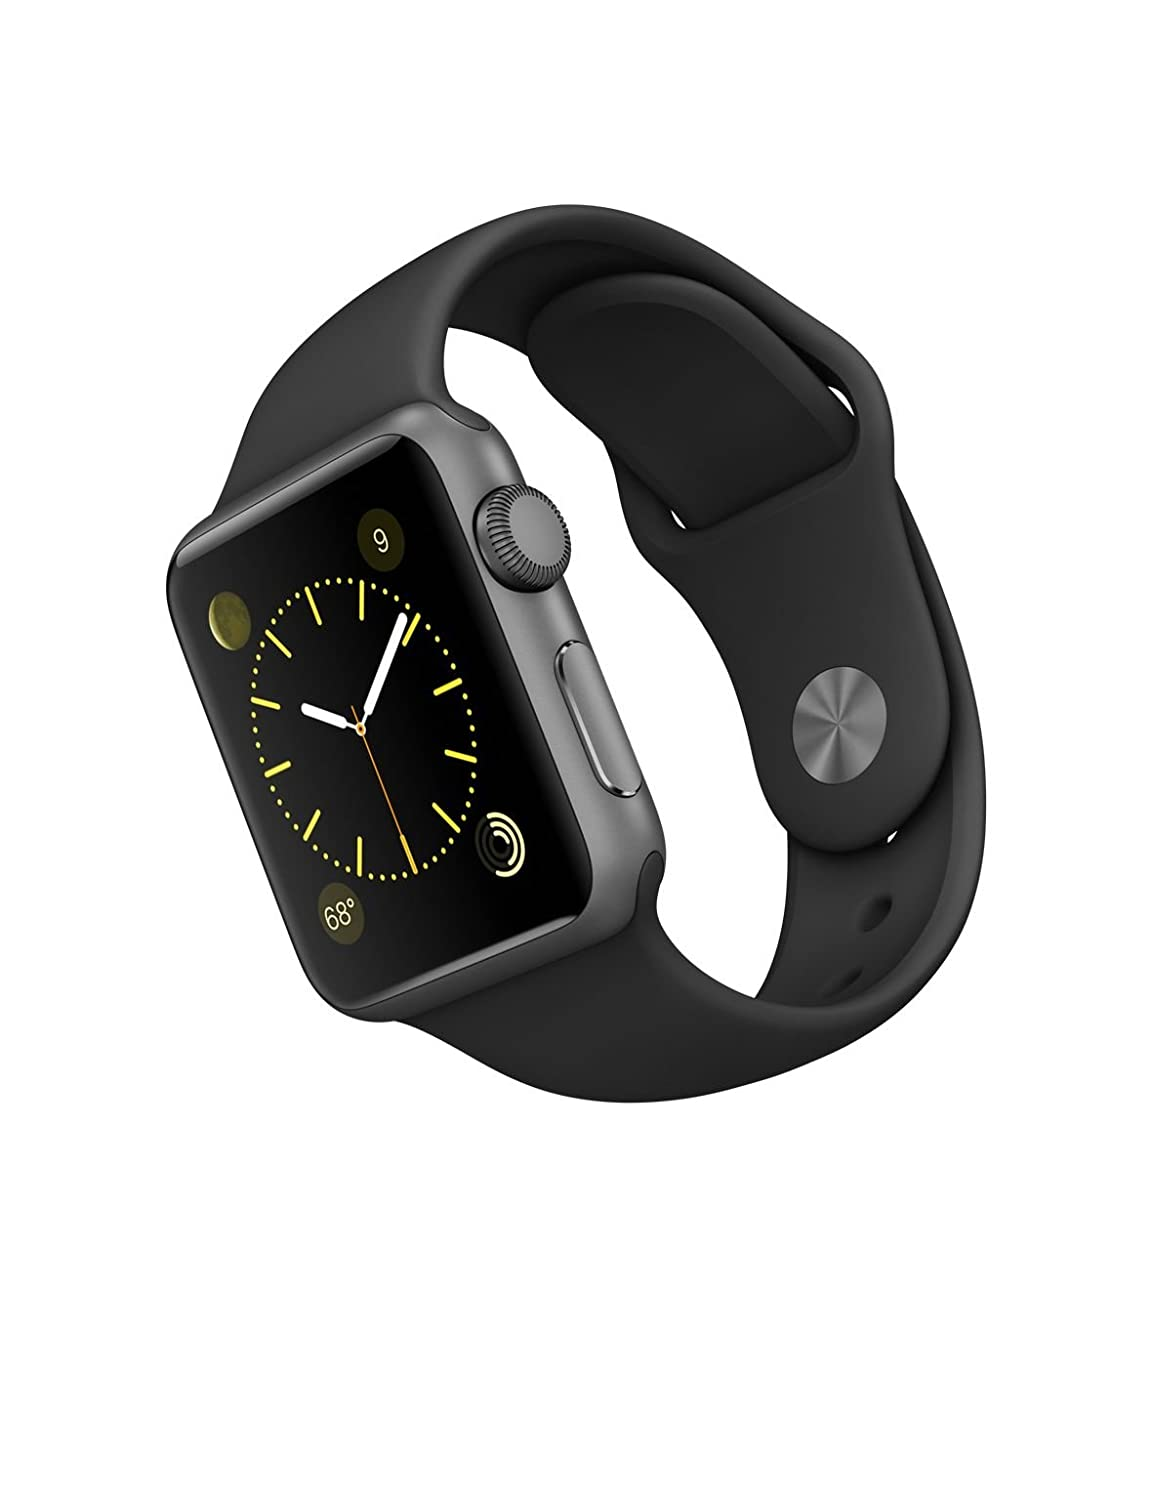 Đồng hồ Apple Watch 38mm Aluminum Case Sport with Black Sport Band